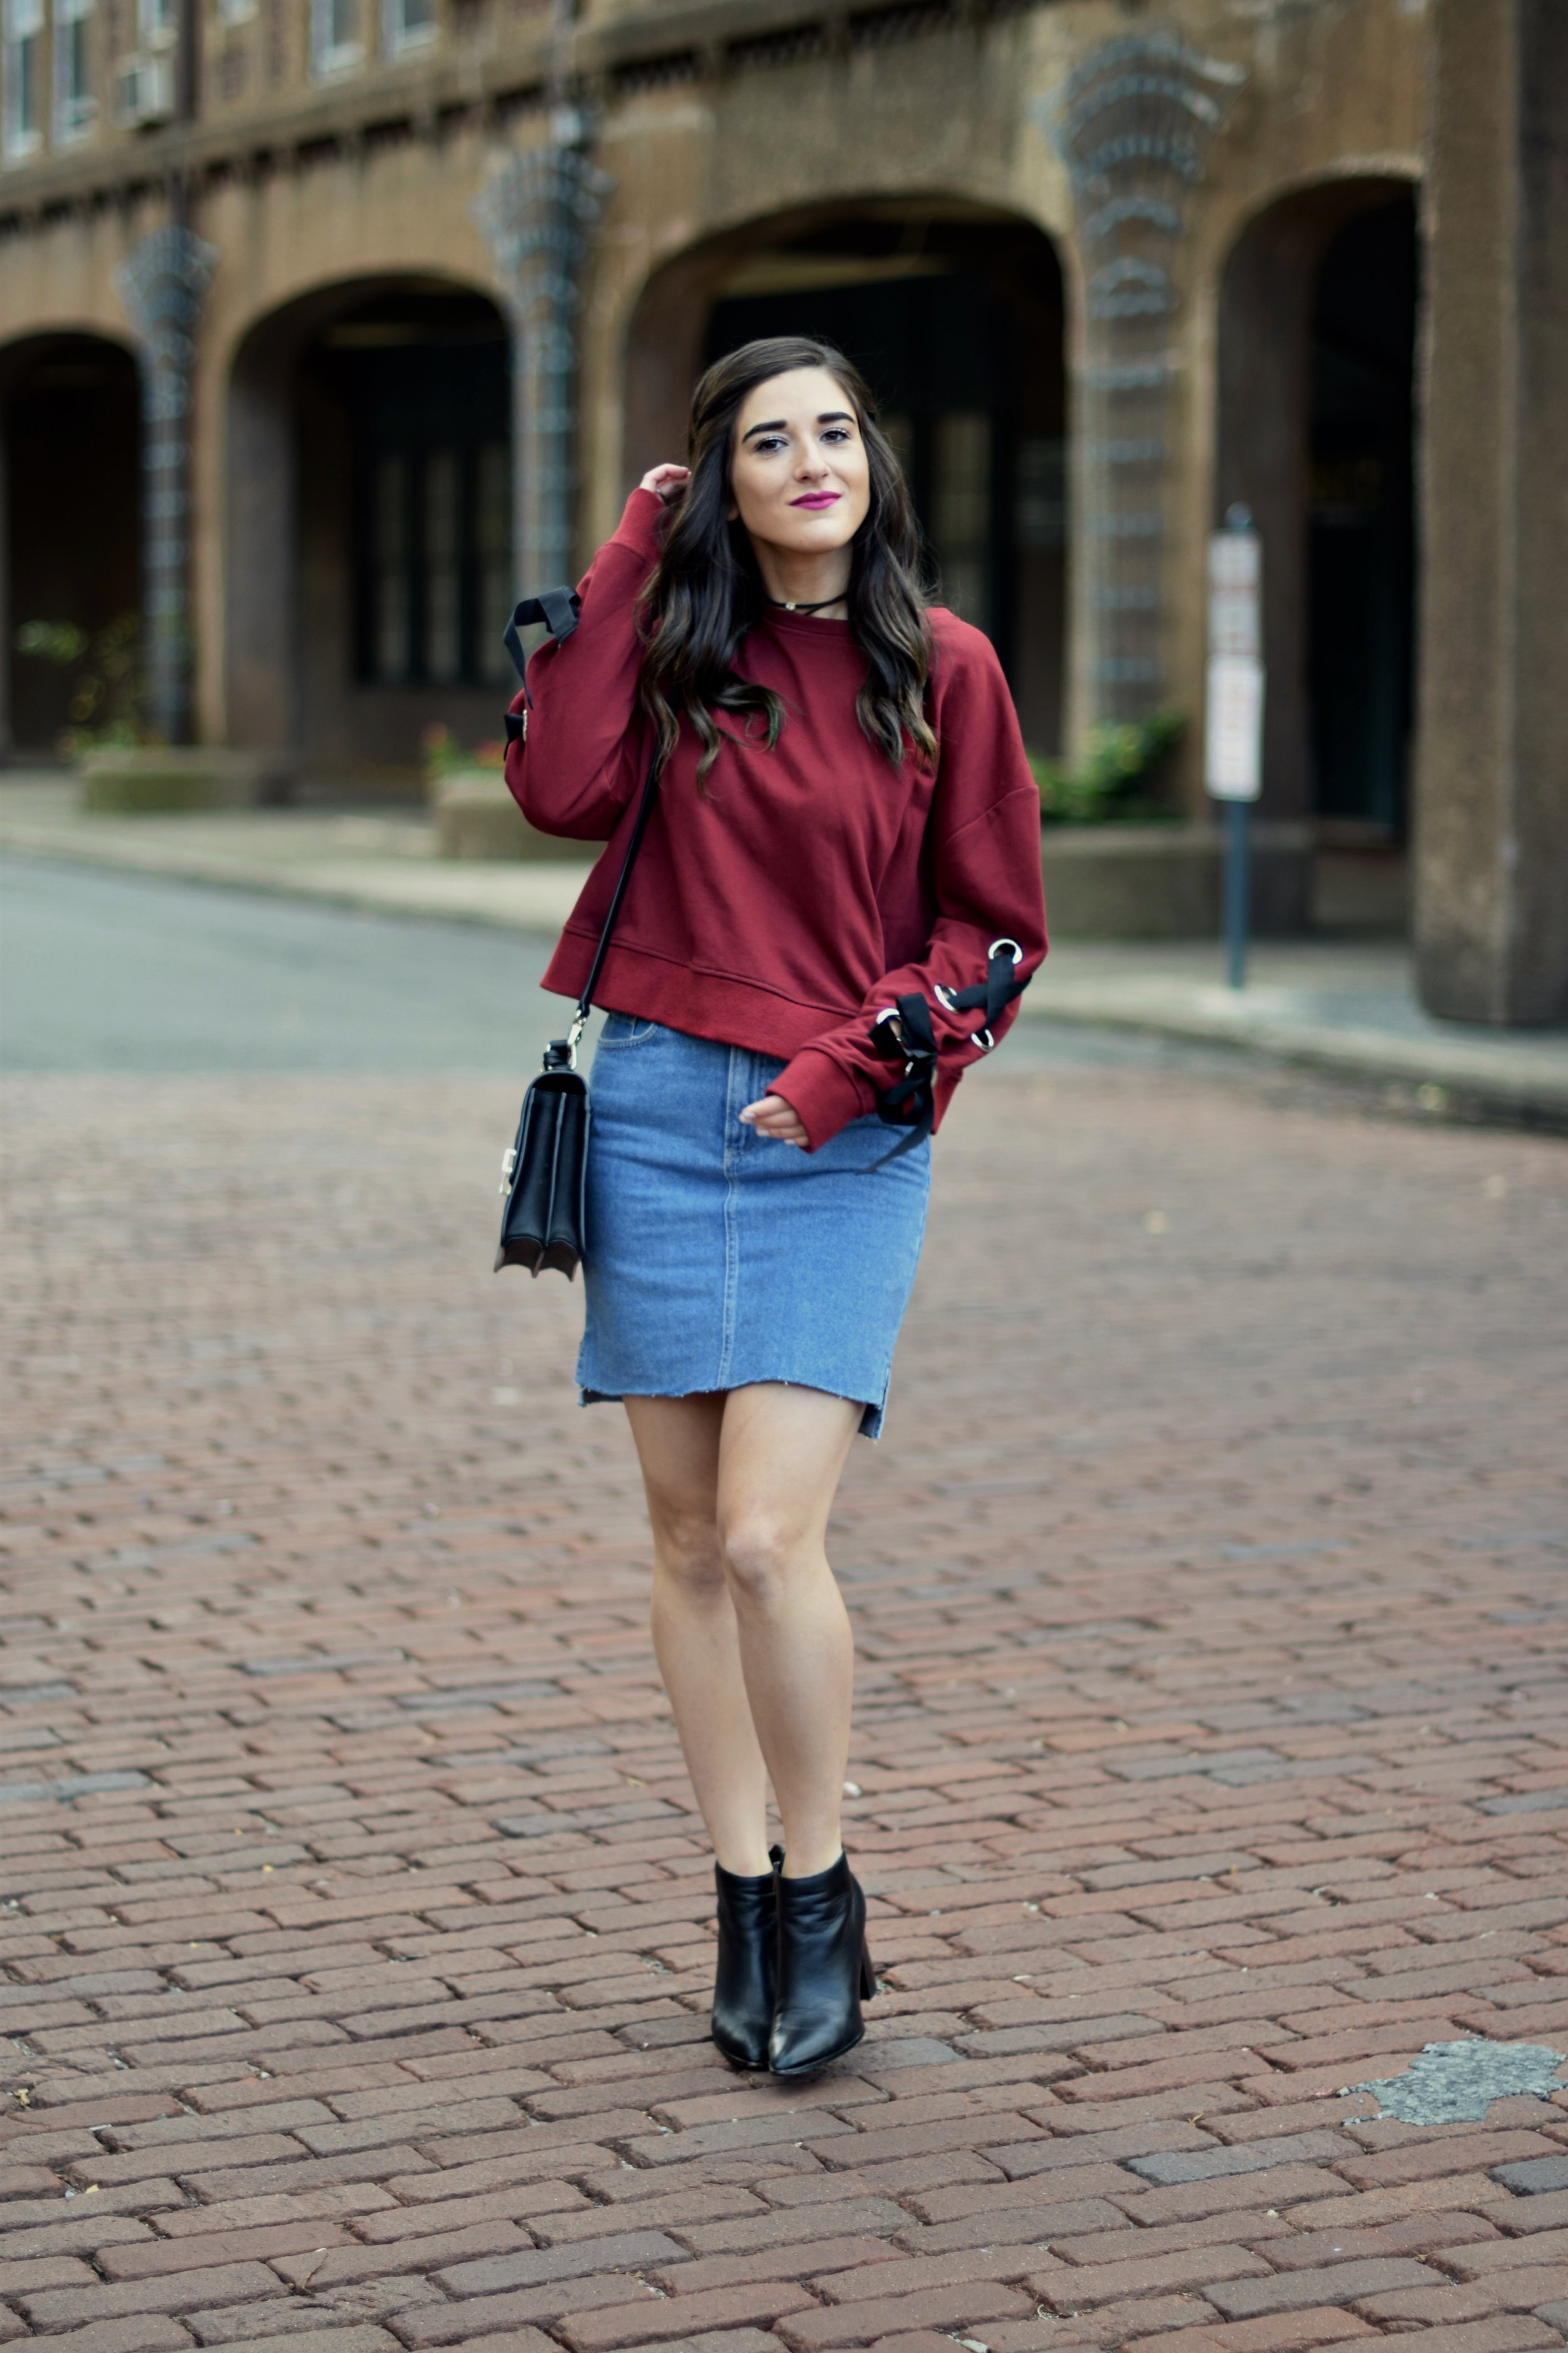 Red Lace-Up Sleeve Sweatshirt Denim Skirt 10 Things I'm Thankful For This Year Esther Santer Fashion Blog NYC Street Style Blogger Outfit OOTD Trendy Girl Women Choker Black Booties Hair Brunette Henri Bendel West 57th Schoolbag Winter Look Fall OOTD.jpg